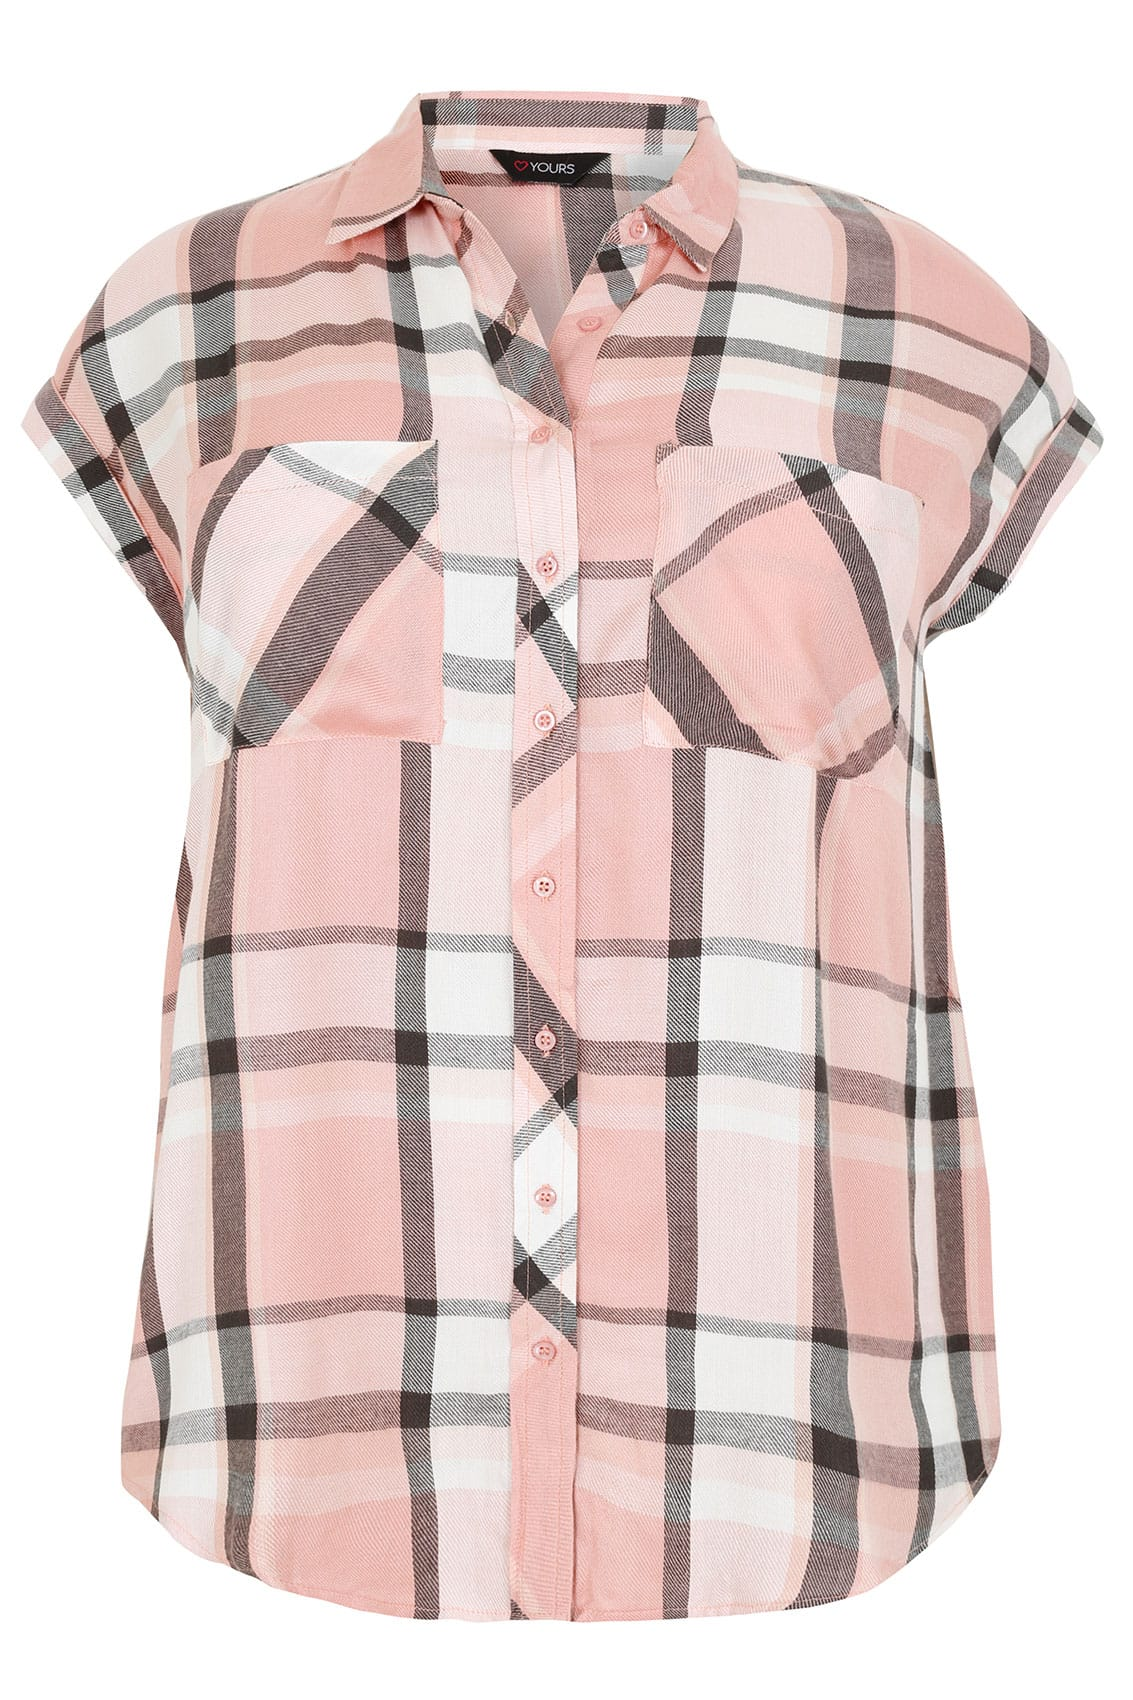 Dusky_Pink_Checked_Shirt_With_Short_Grown-On_Sleeves_130132_7cf3 X Visa Application Form Template on enter japan sample, b1 b2, south africa, german schengen,